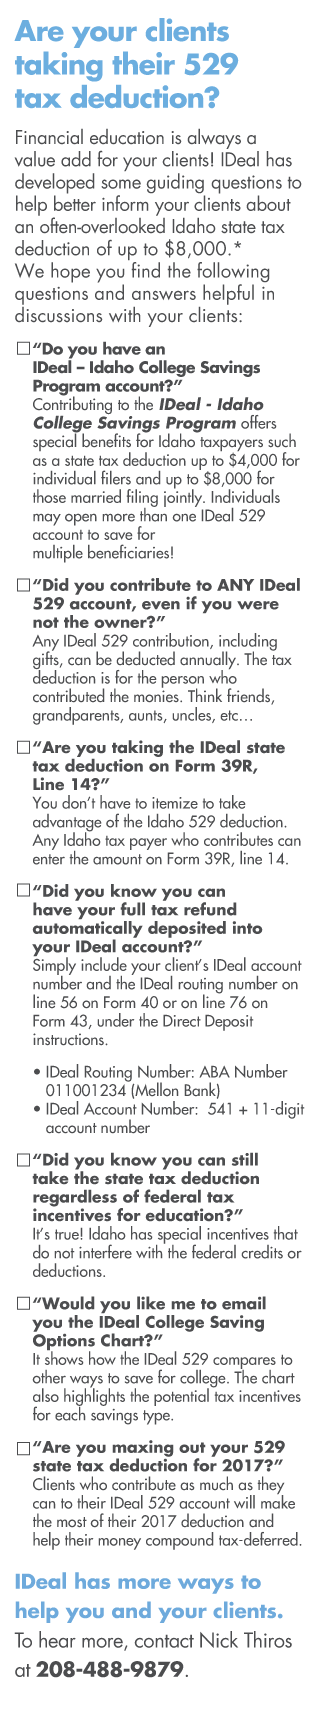 ID_checklist_flat_320px-wide_mobile.png